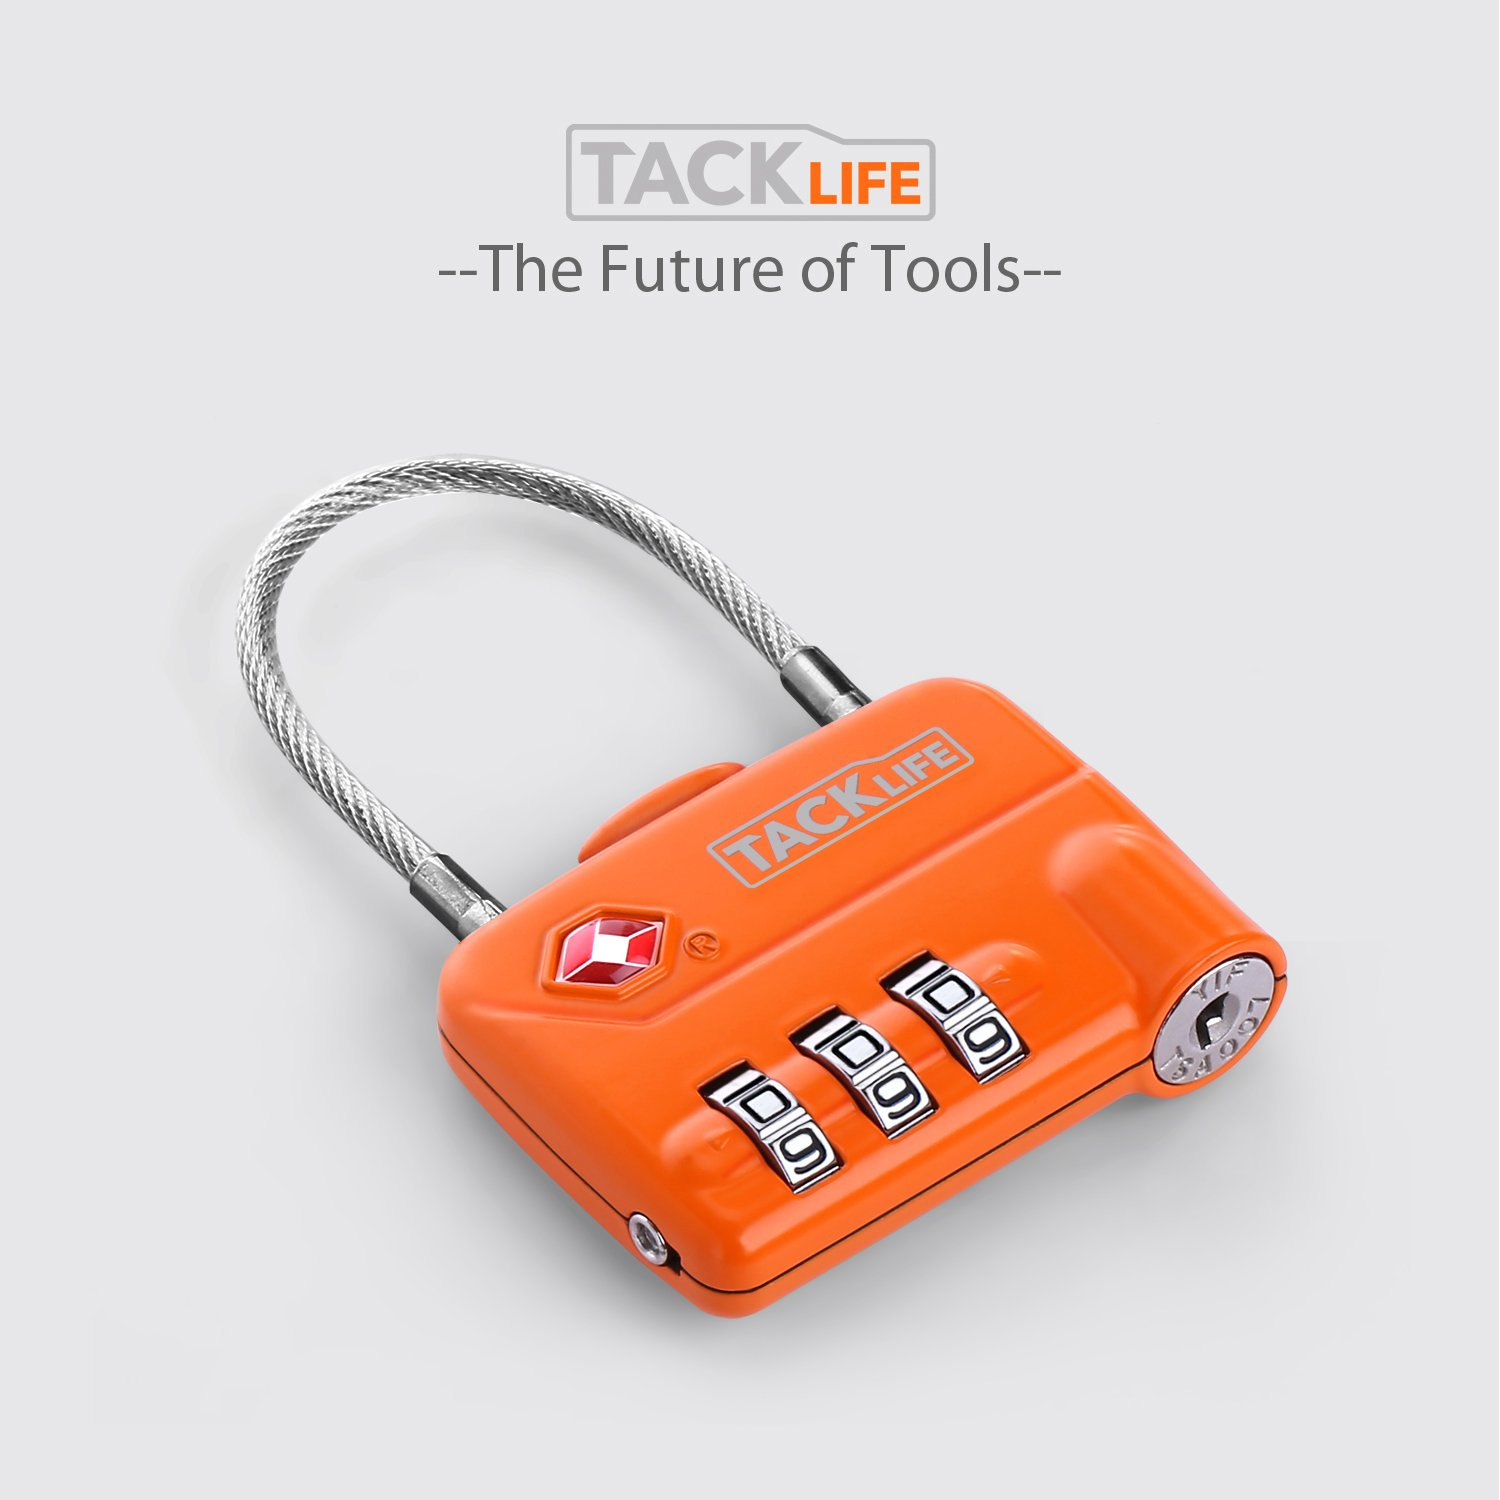 Luggage Locks, TACKLIFE HCL1A Cable Locks, TSA Approved Travel Locks, Flexible Locks, 3Digit Combination Locks for Gym, School, Locker, Outdoor, Fence, Suitcase & Baggage - Orange by TACKLIFE (Image #7)